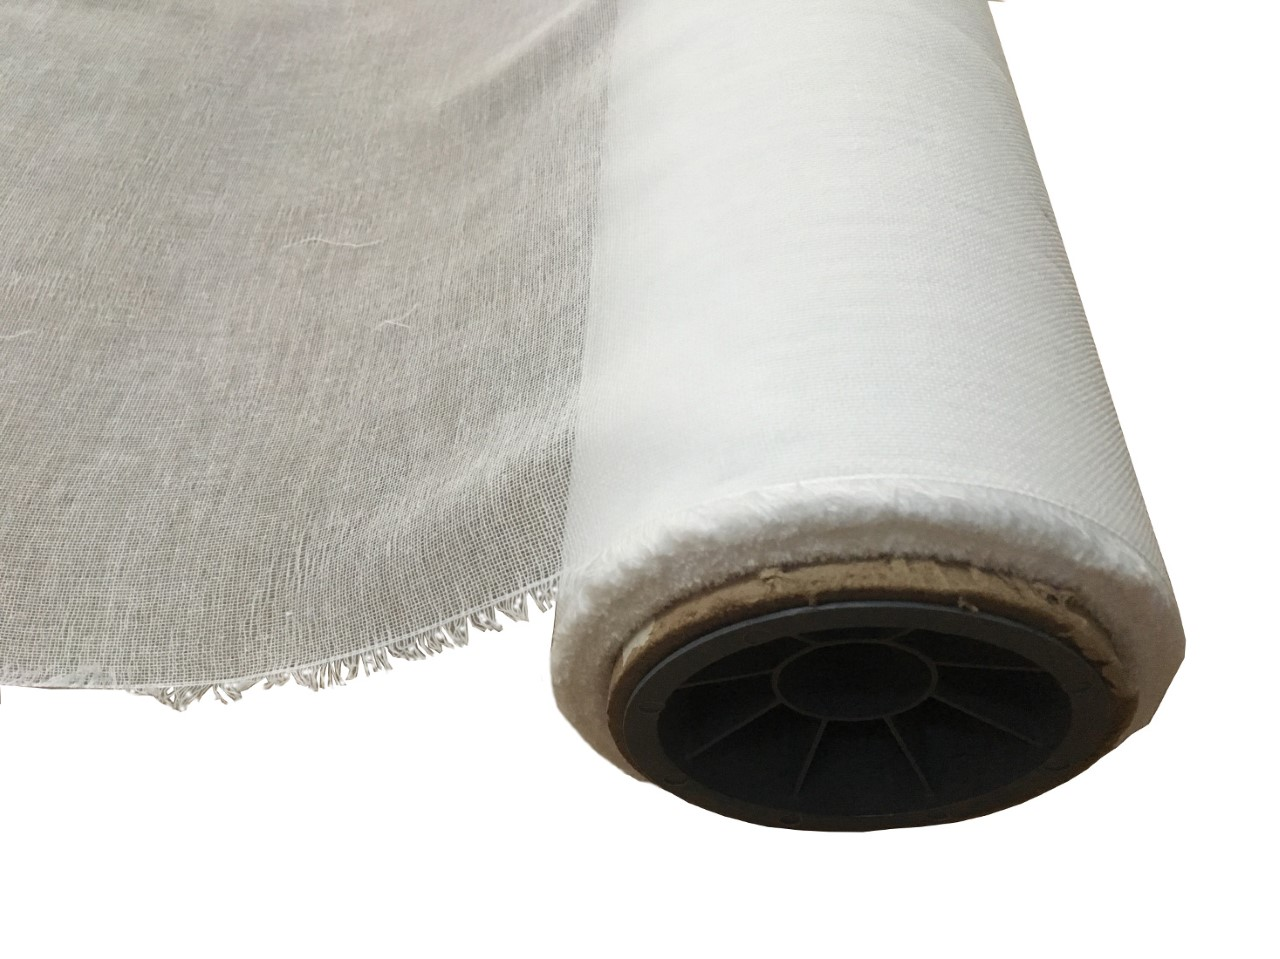 "Grade 60 Cheesecloth White 42 Yard Roll W/Core Plugs 36/38"" Wide"